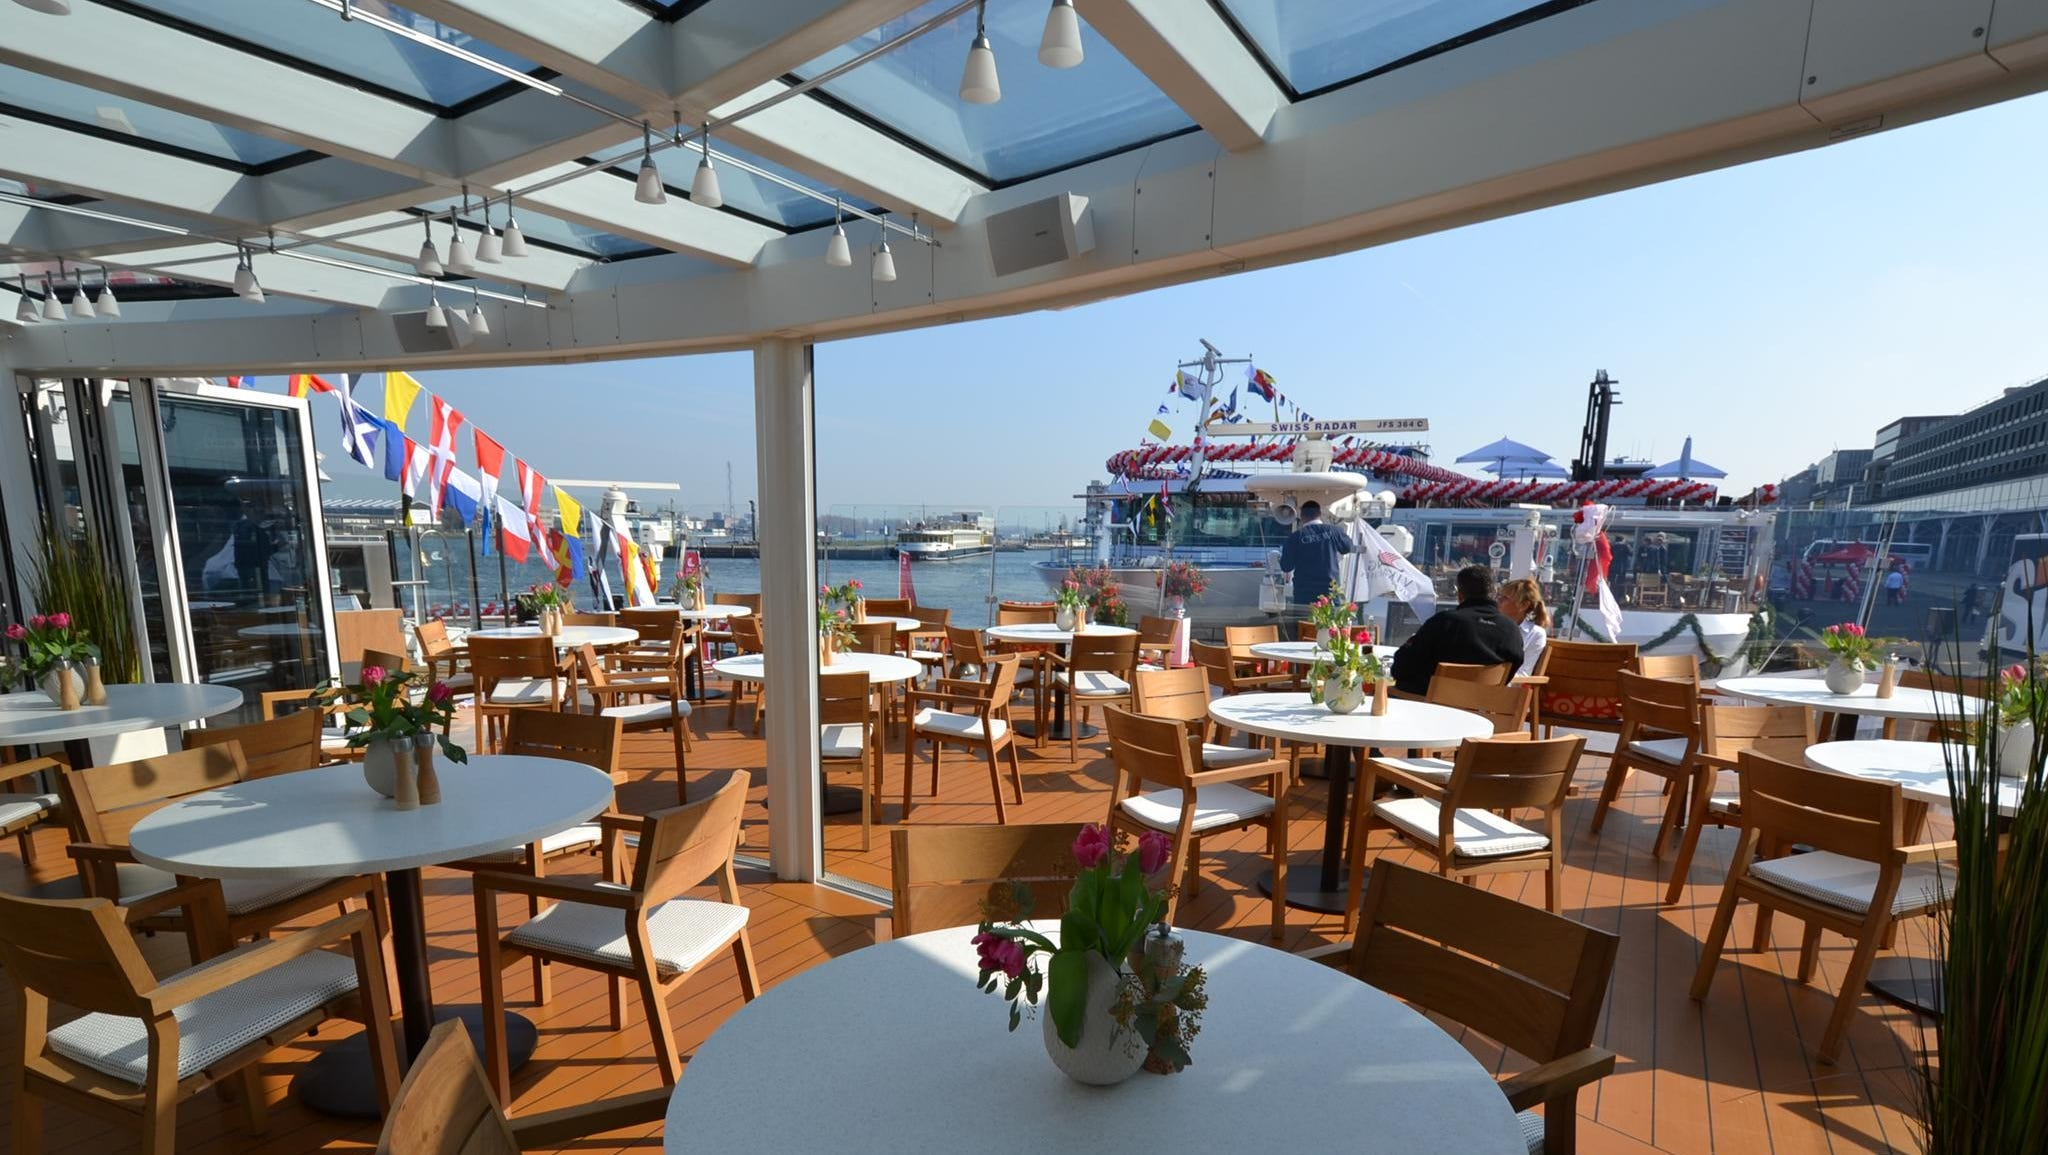 Another innovative new-for-the-industry feature on the Viking Odin and its sister ships is an all-weather indoor/outdoor terrace at their bows. The terraces have retractable floor-to-ceiling glass doors that can be closed during inclement weather.